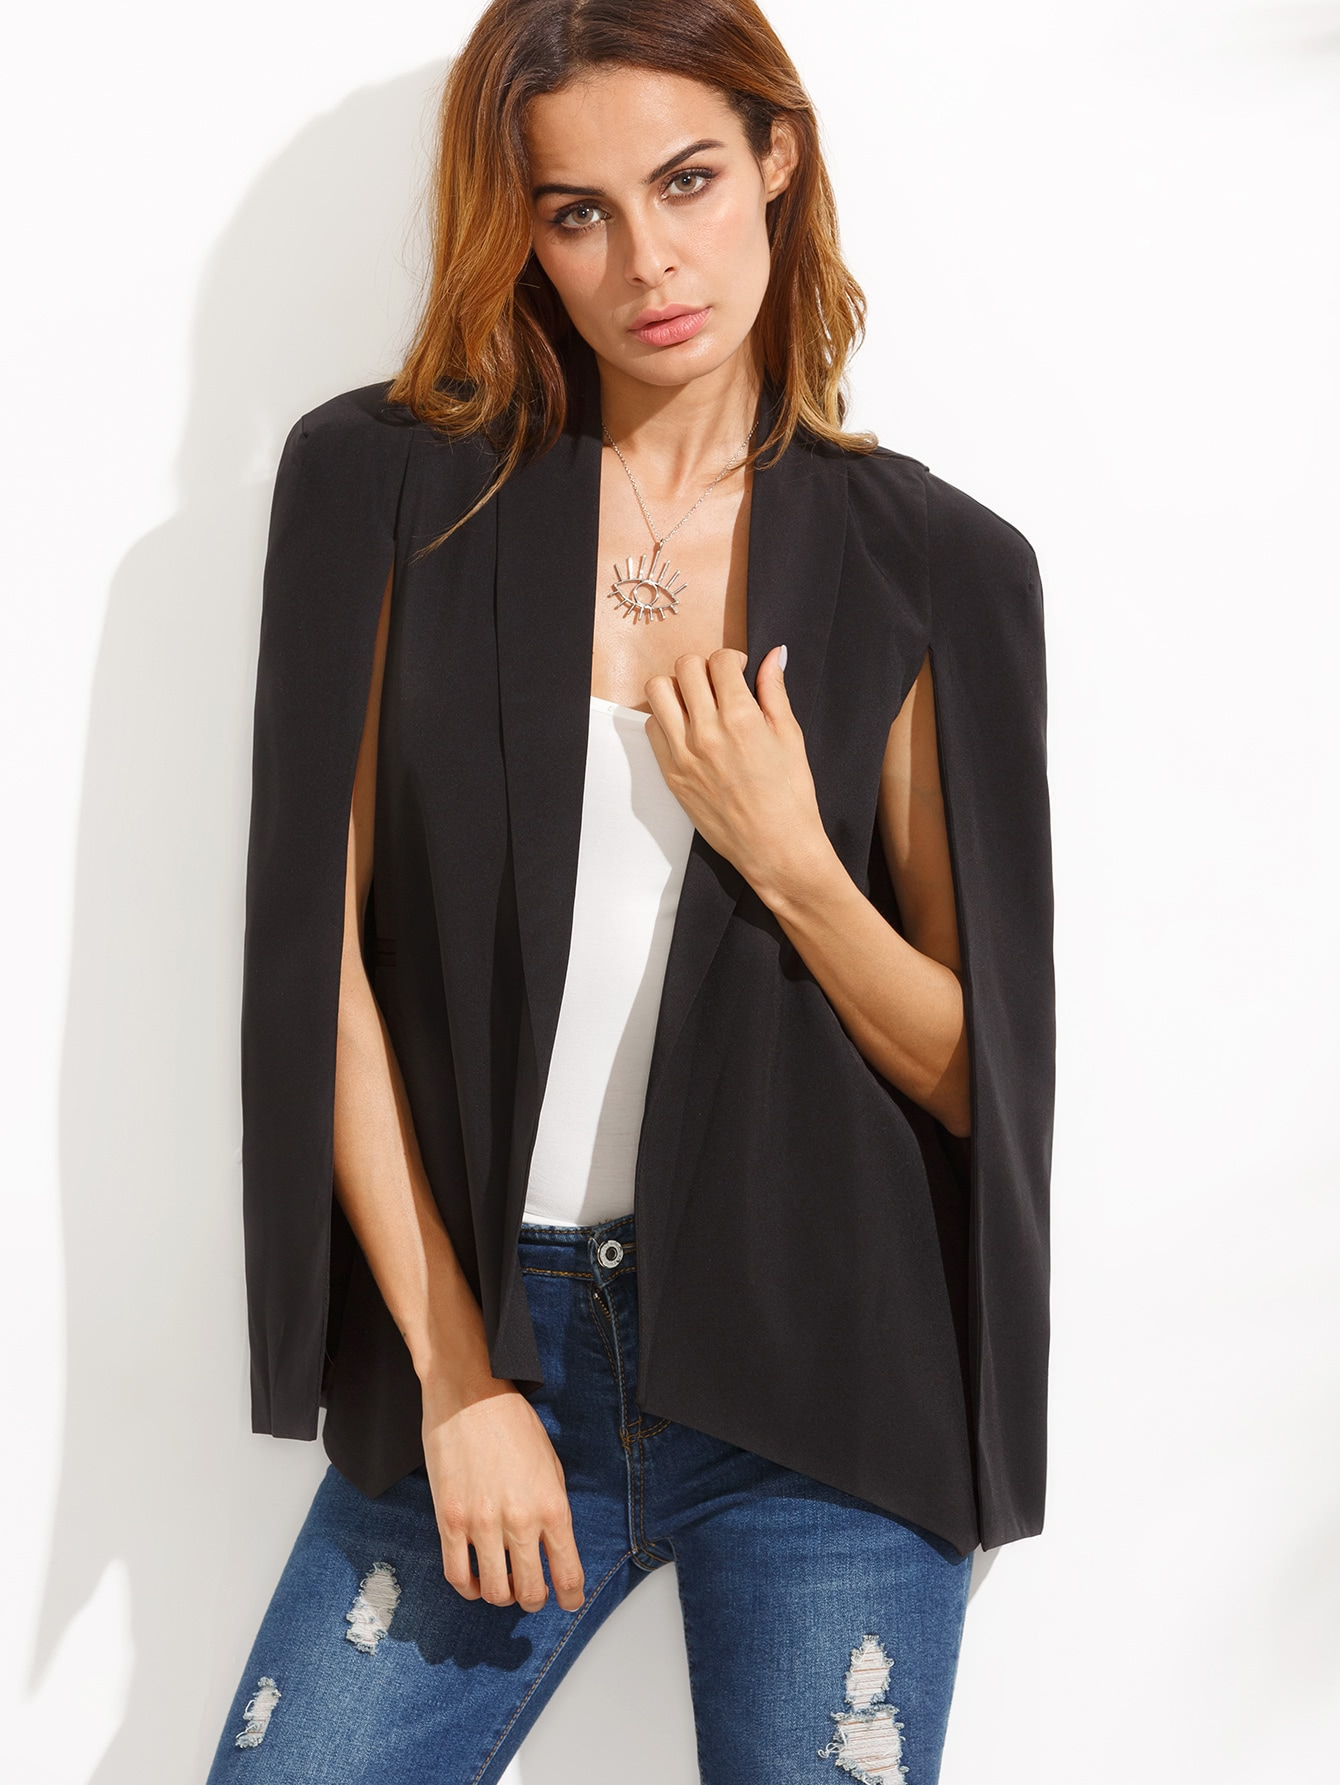 Shawl Collar Cape Sleeve Blazer grey lapel collar sleeveless cape